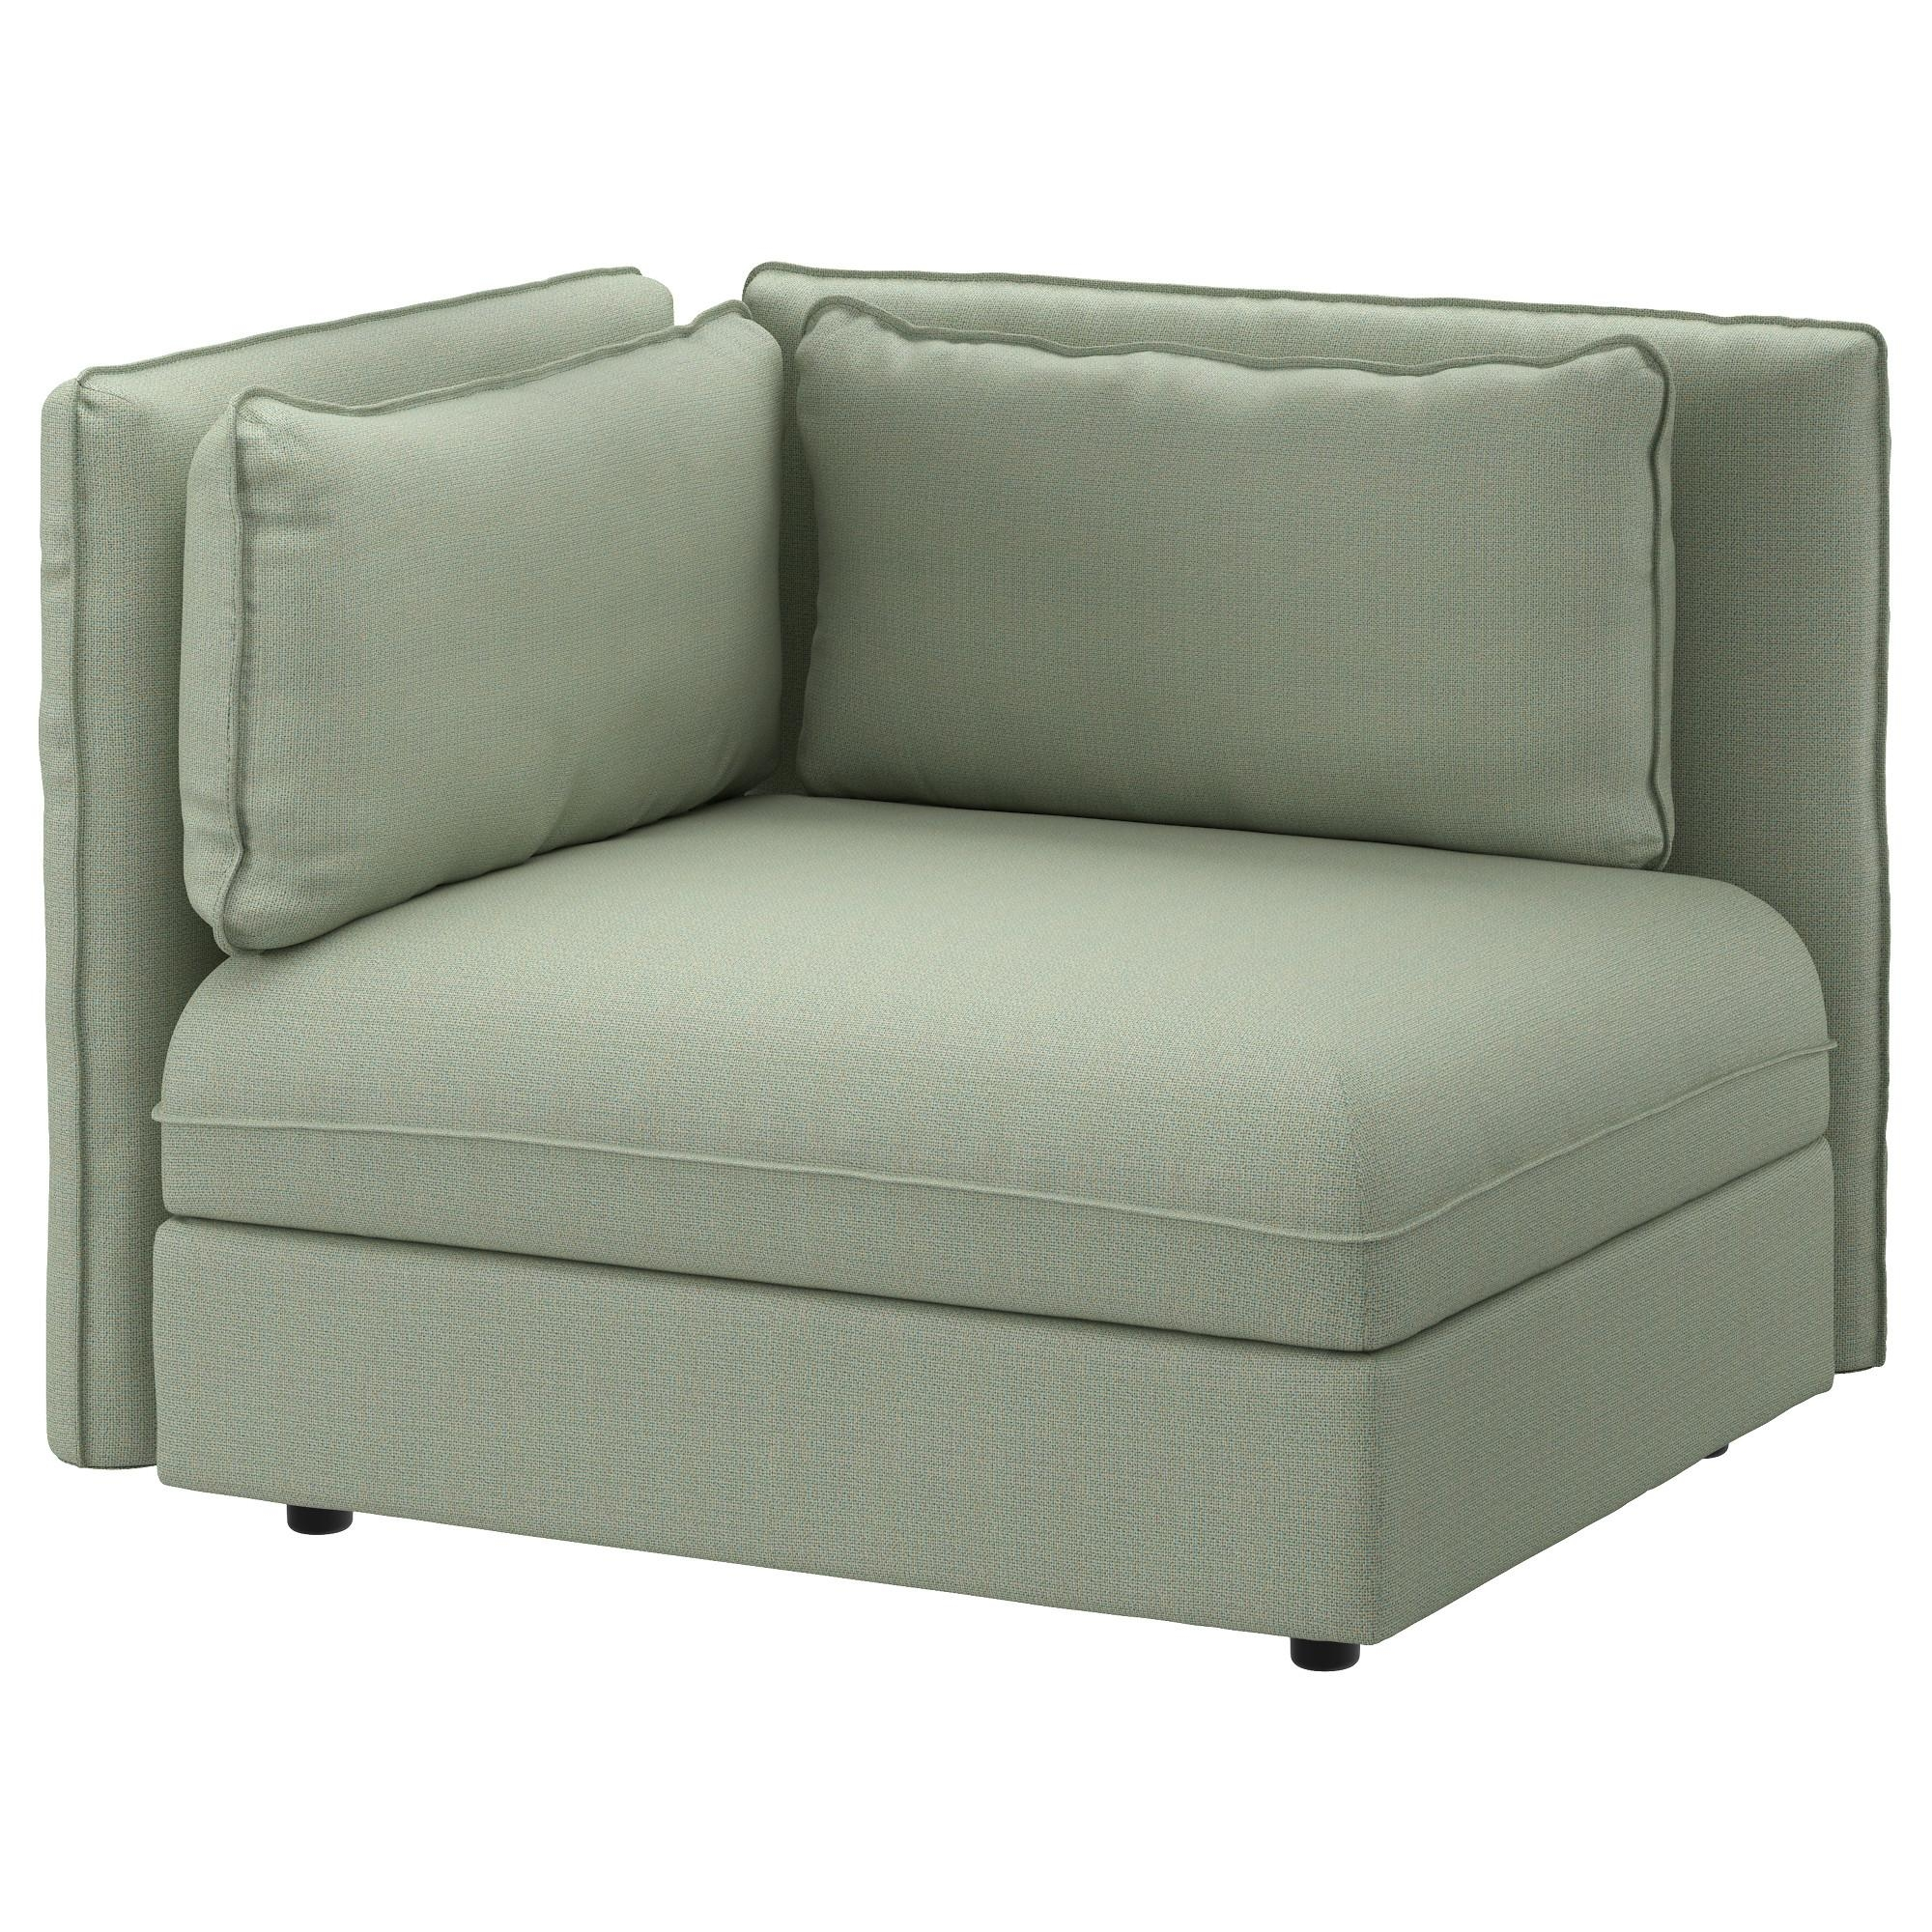 Ikea Sleeper Sofa: 20 Collection Of Ikea Sectional Sleeper Sofa